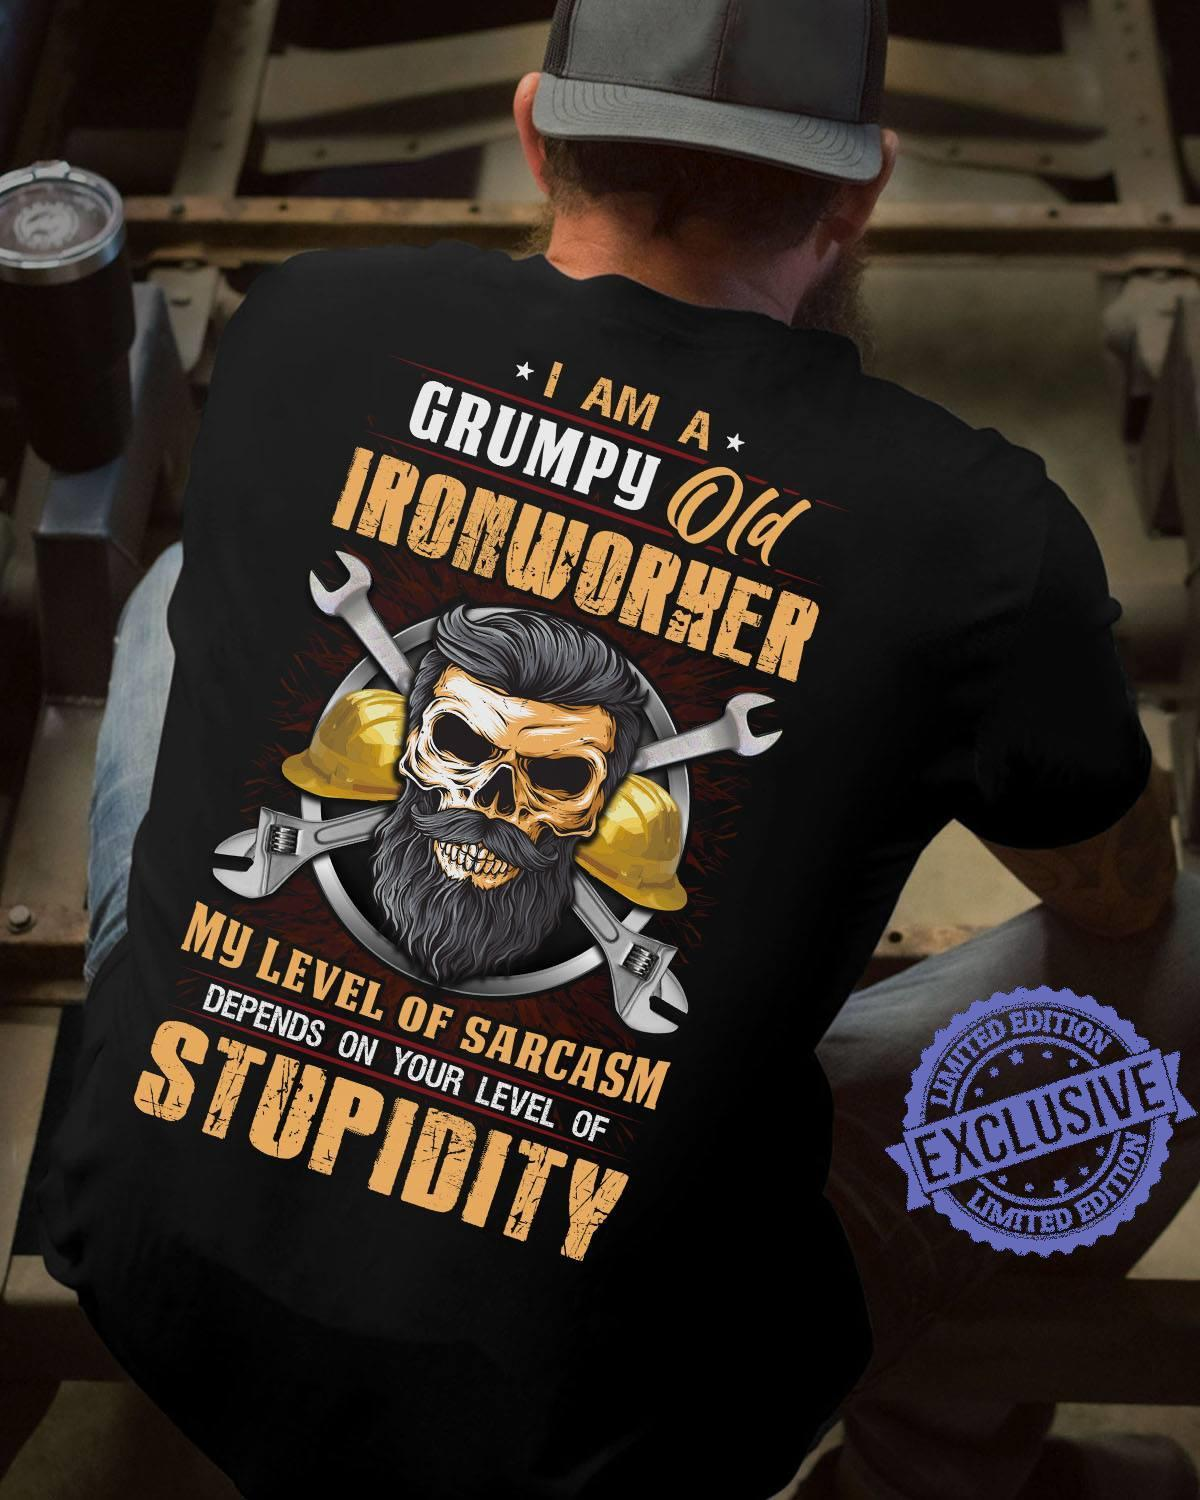 I am a grumpy old ironworker my level of sarcasm shirt